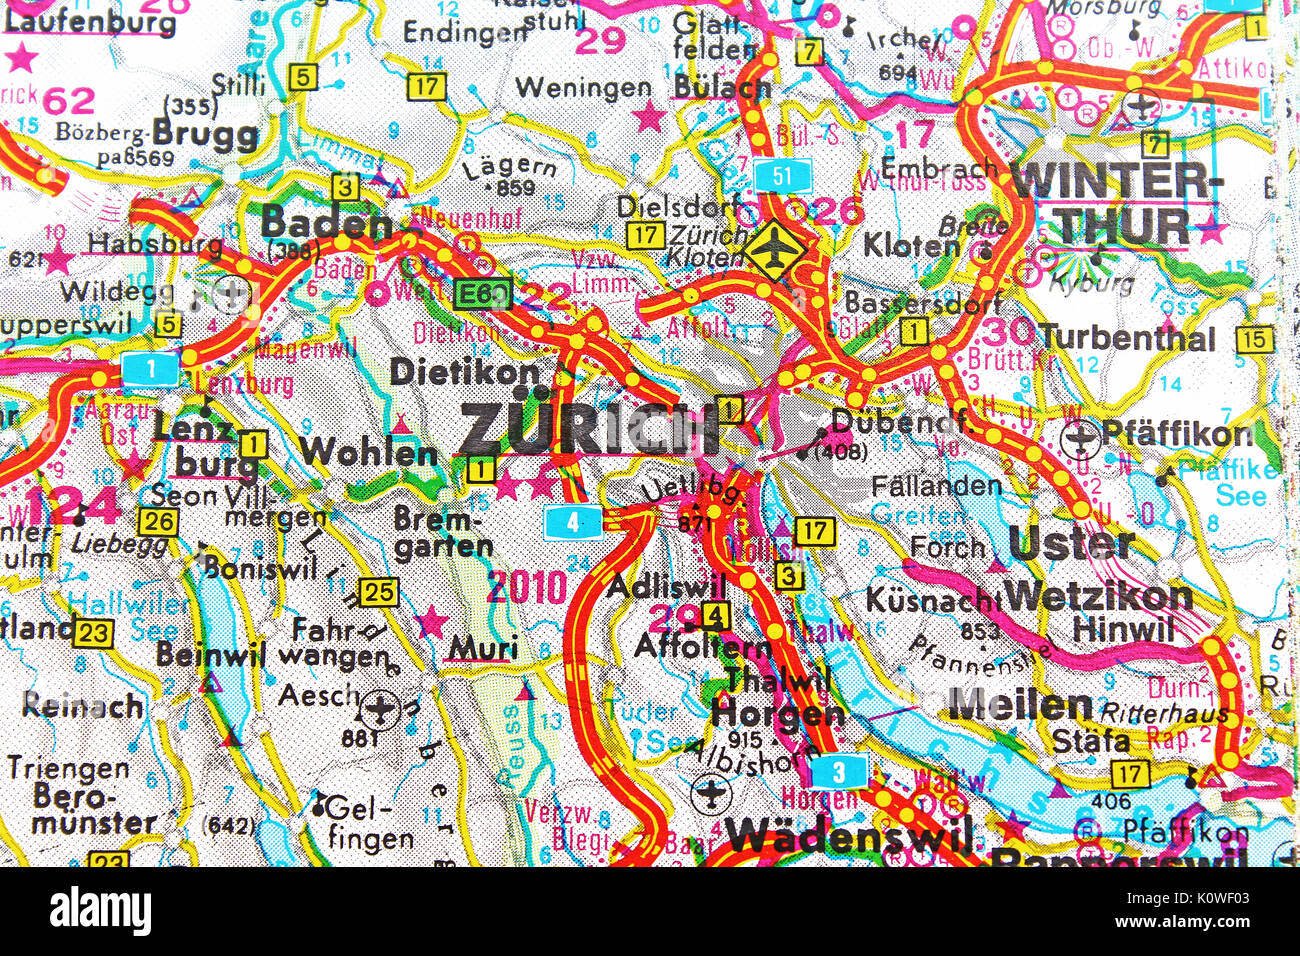 Zurich Map Stock Photos Zurich Map Stock Images Alamy